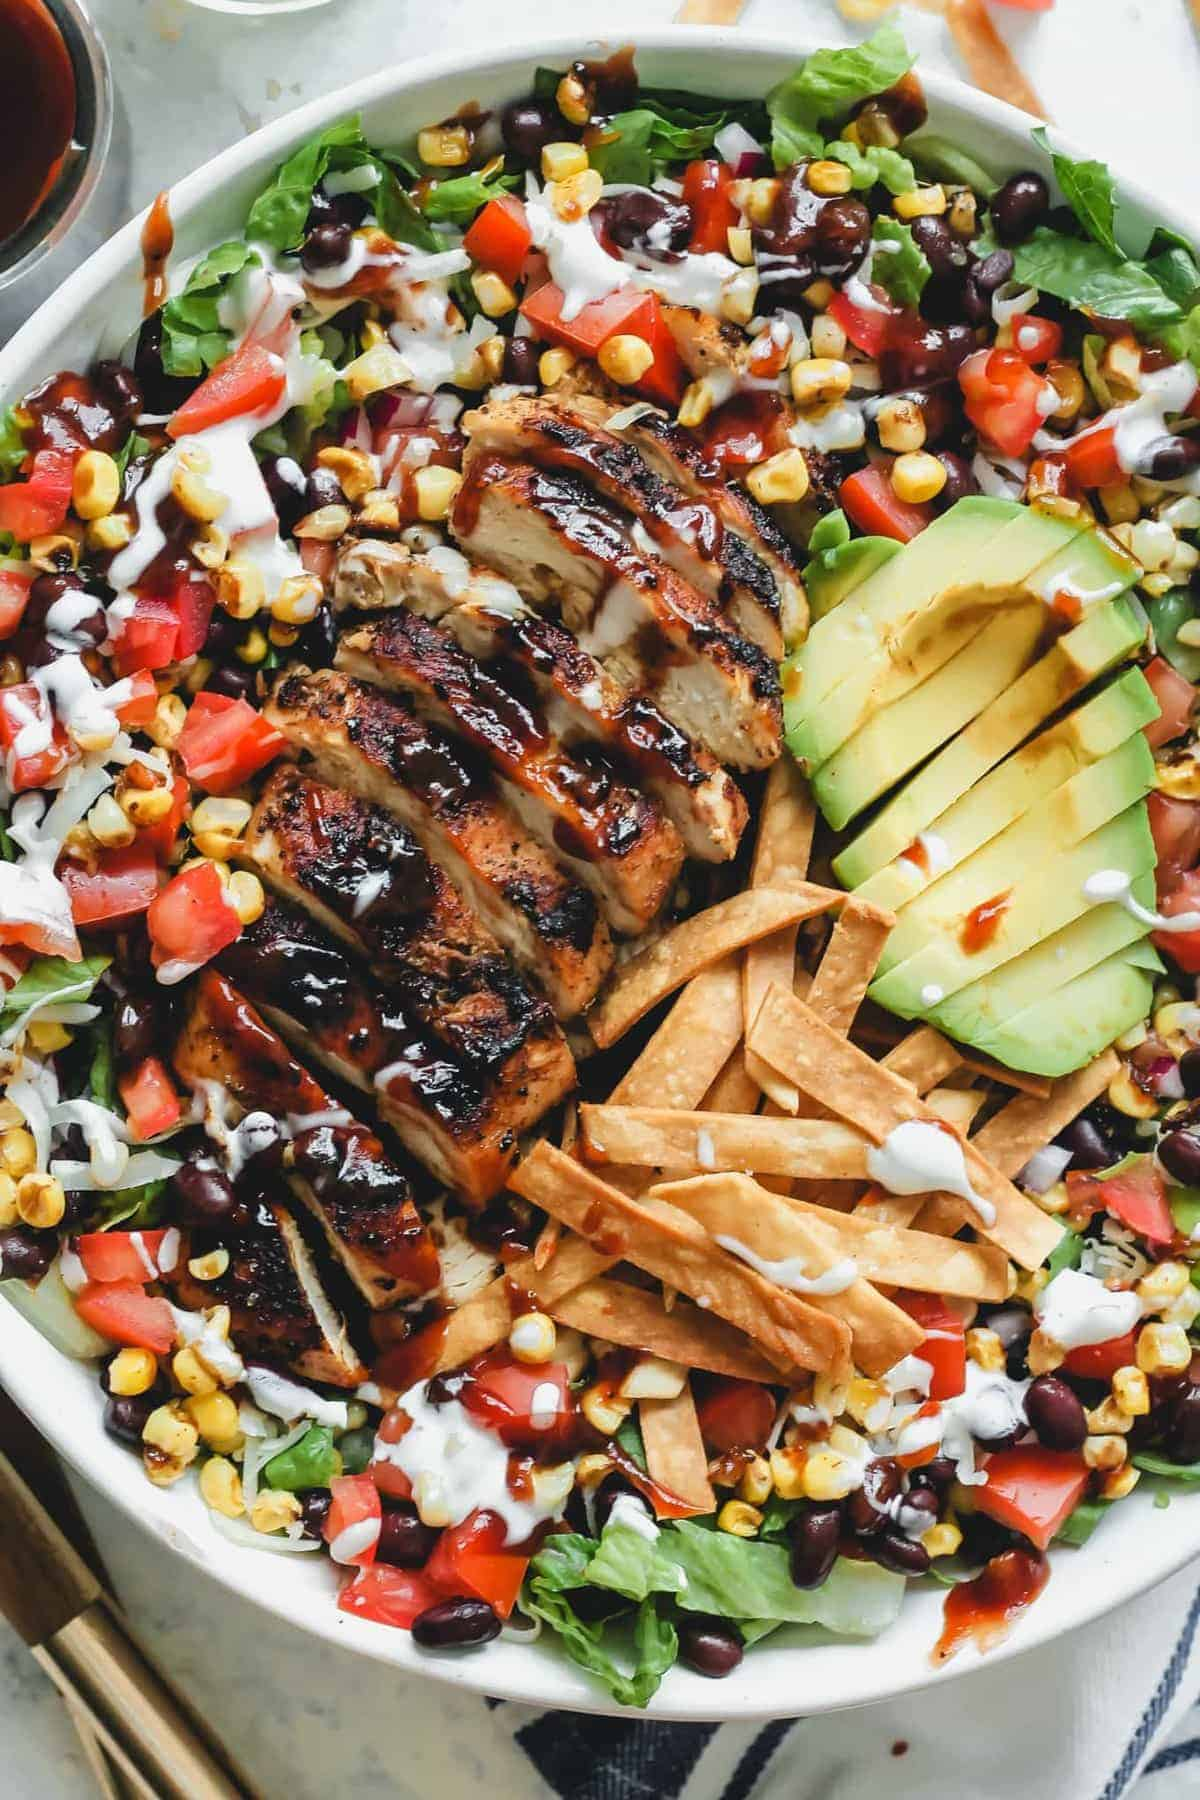 BBQ Chicken Salad in a large white bowl ready to serve